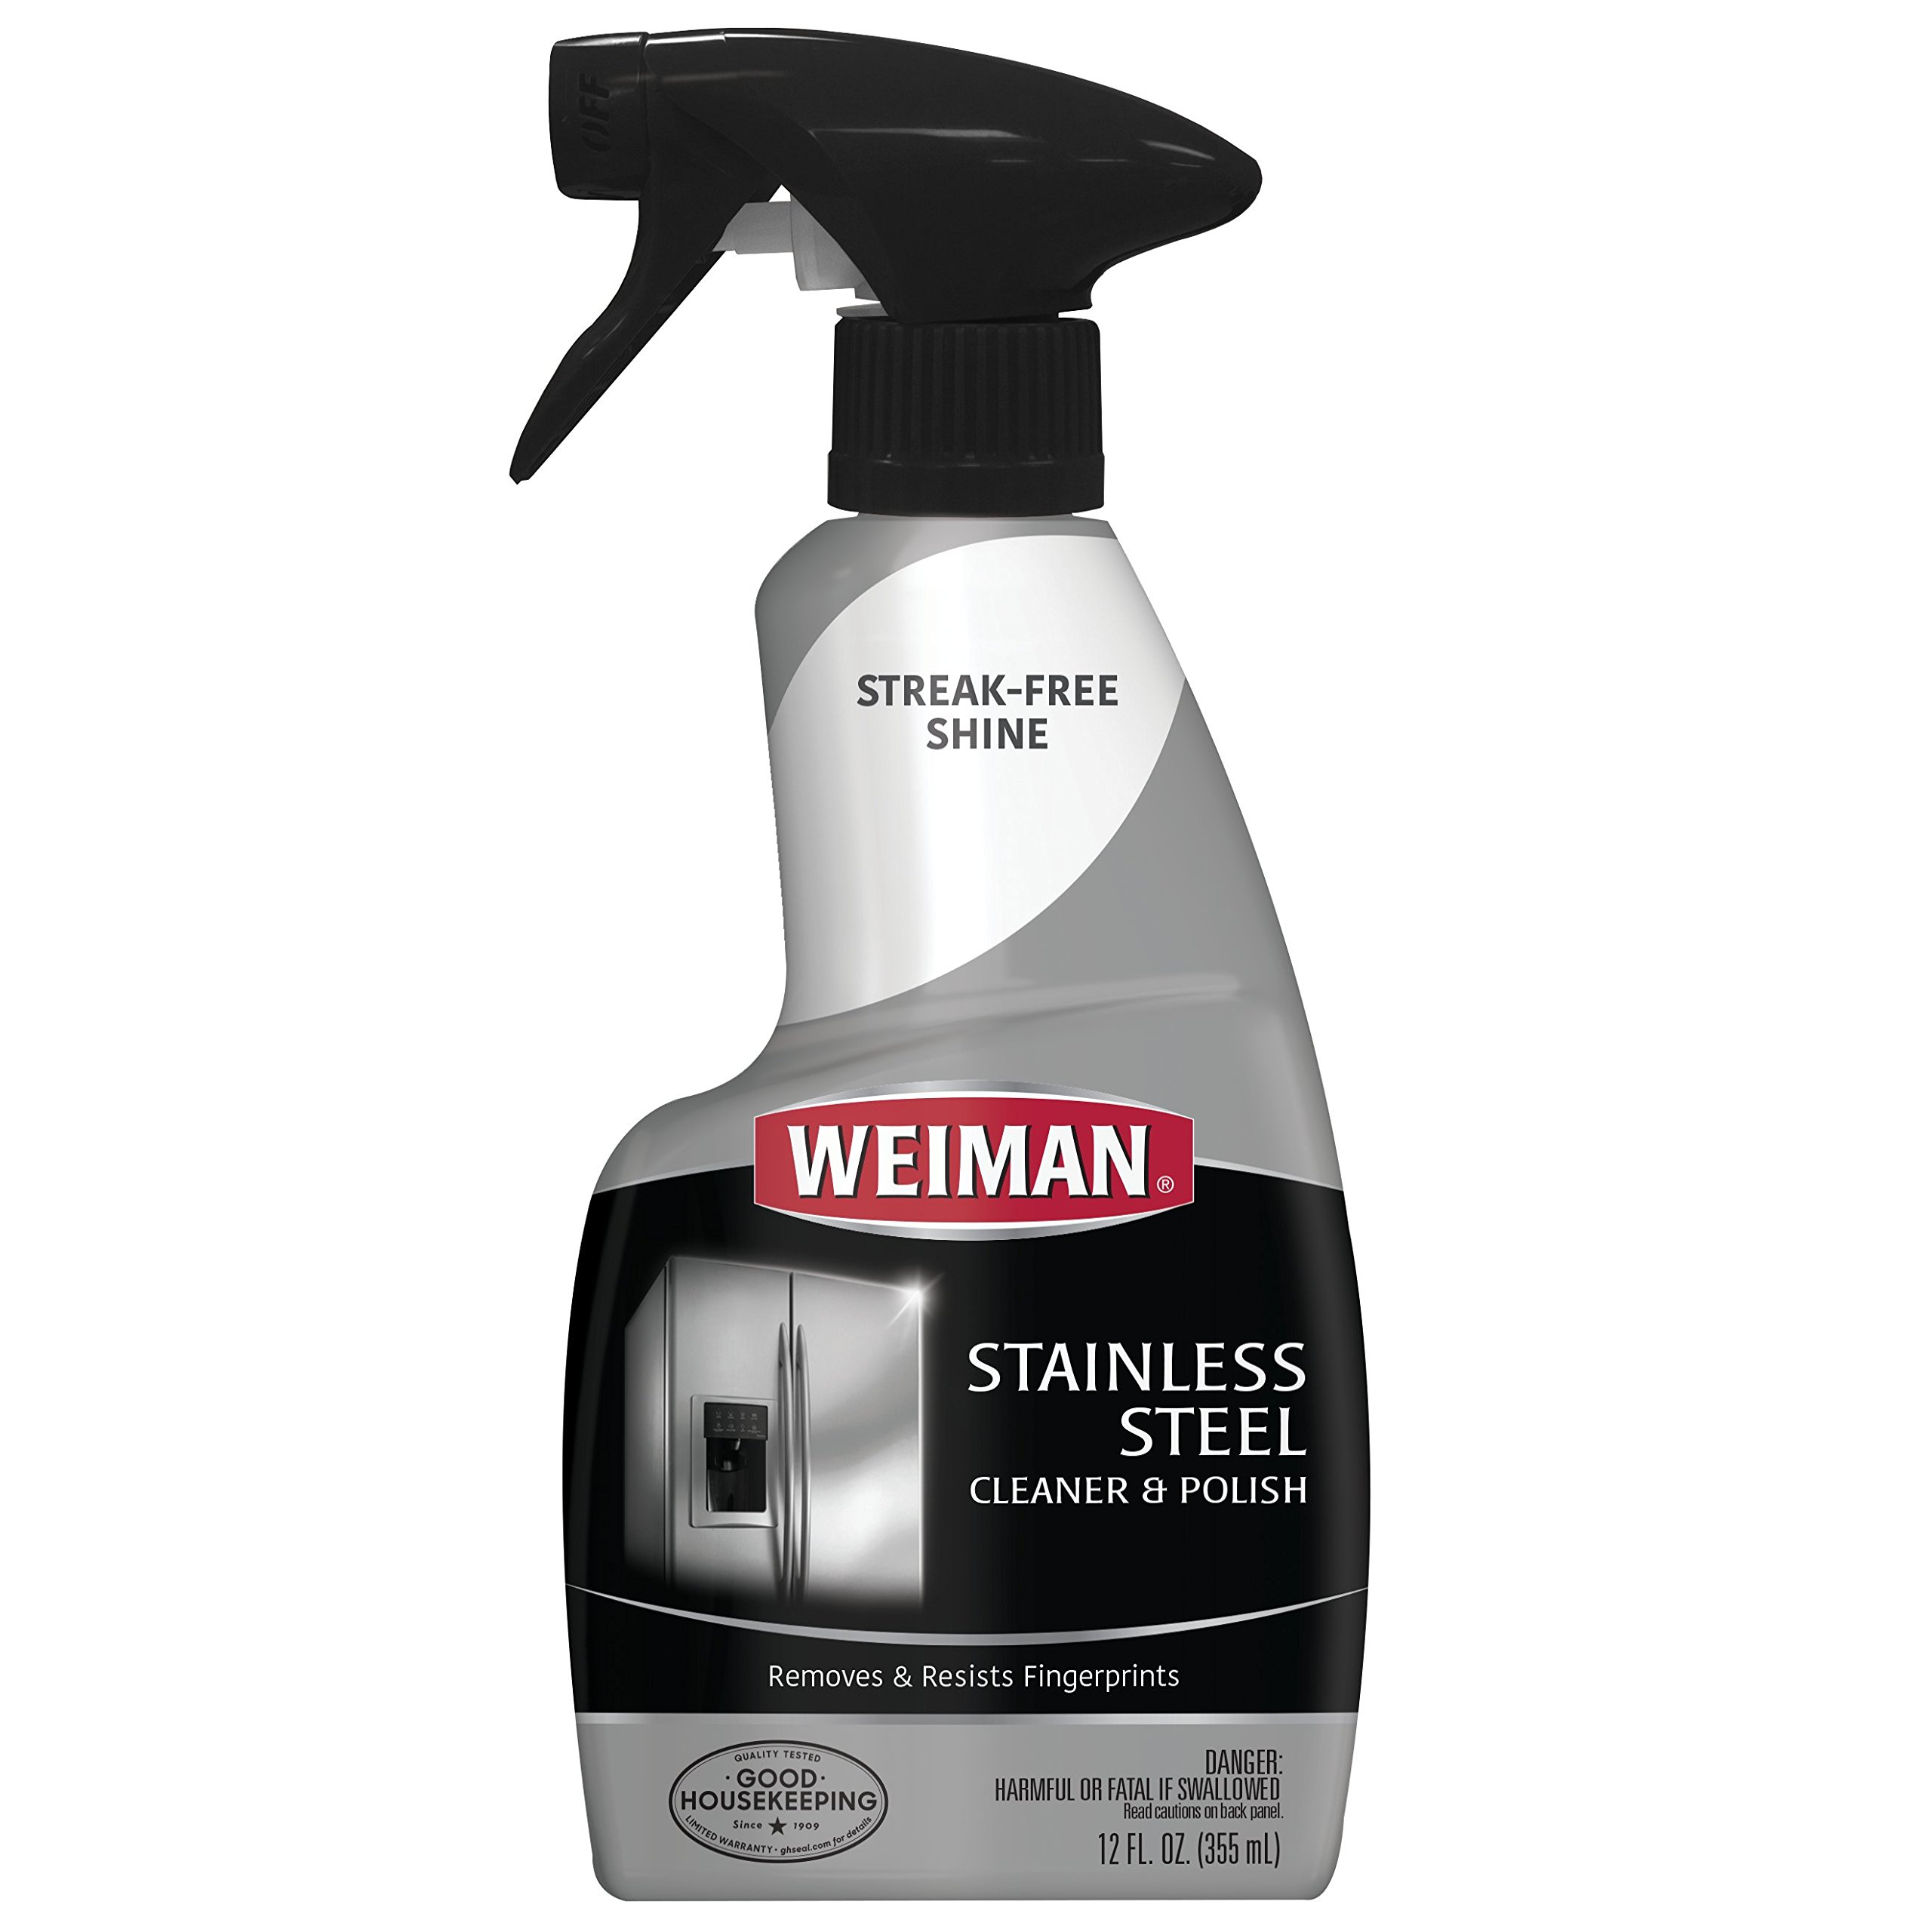 Weiman Stainless Steel Cleaner & Polish 12 fl oz - 6 pack by Weiman